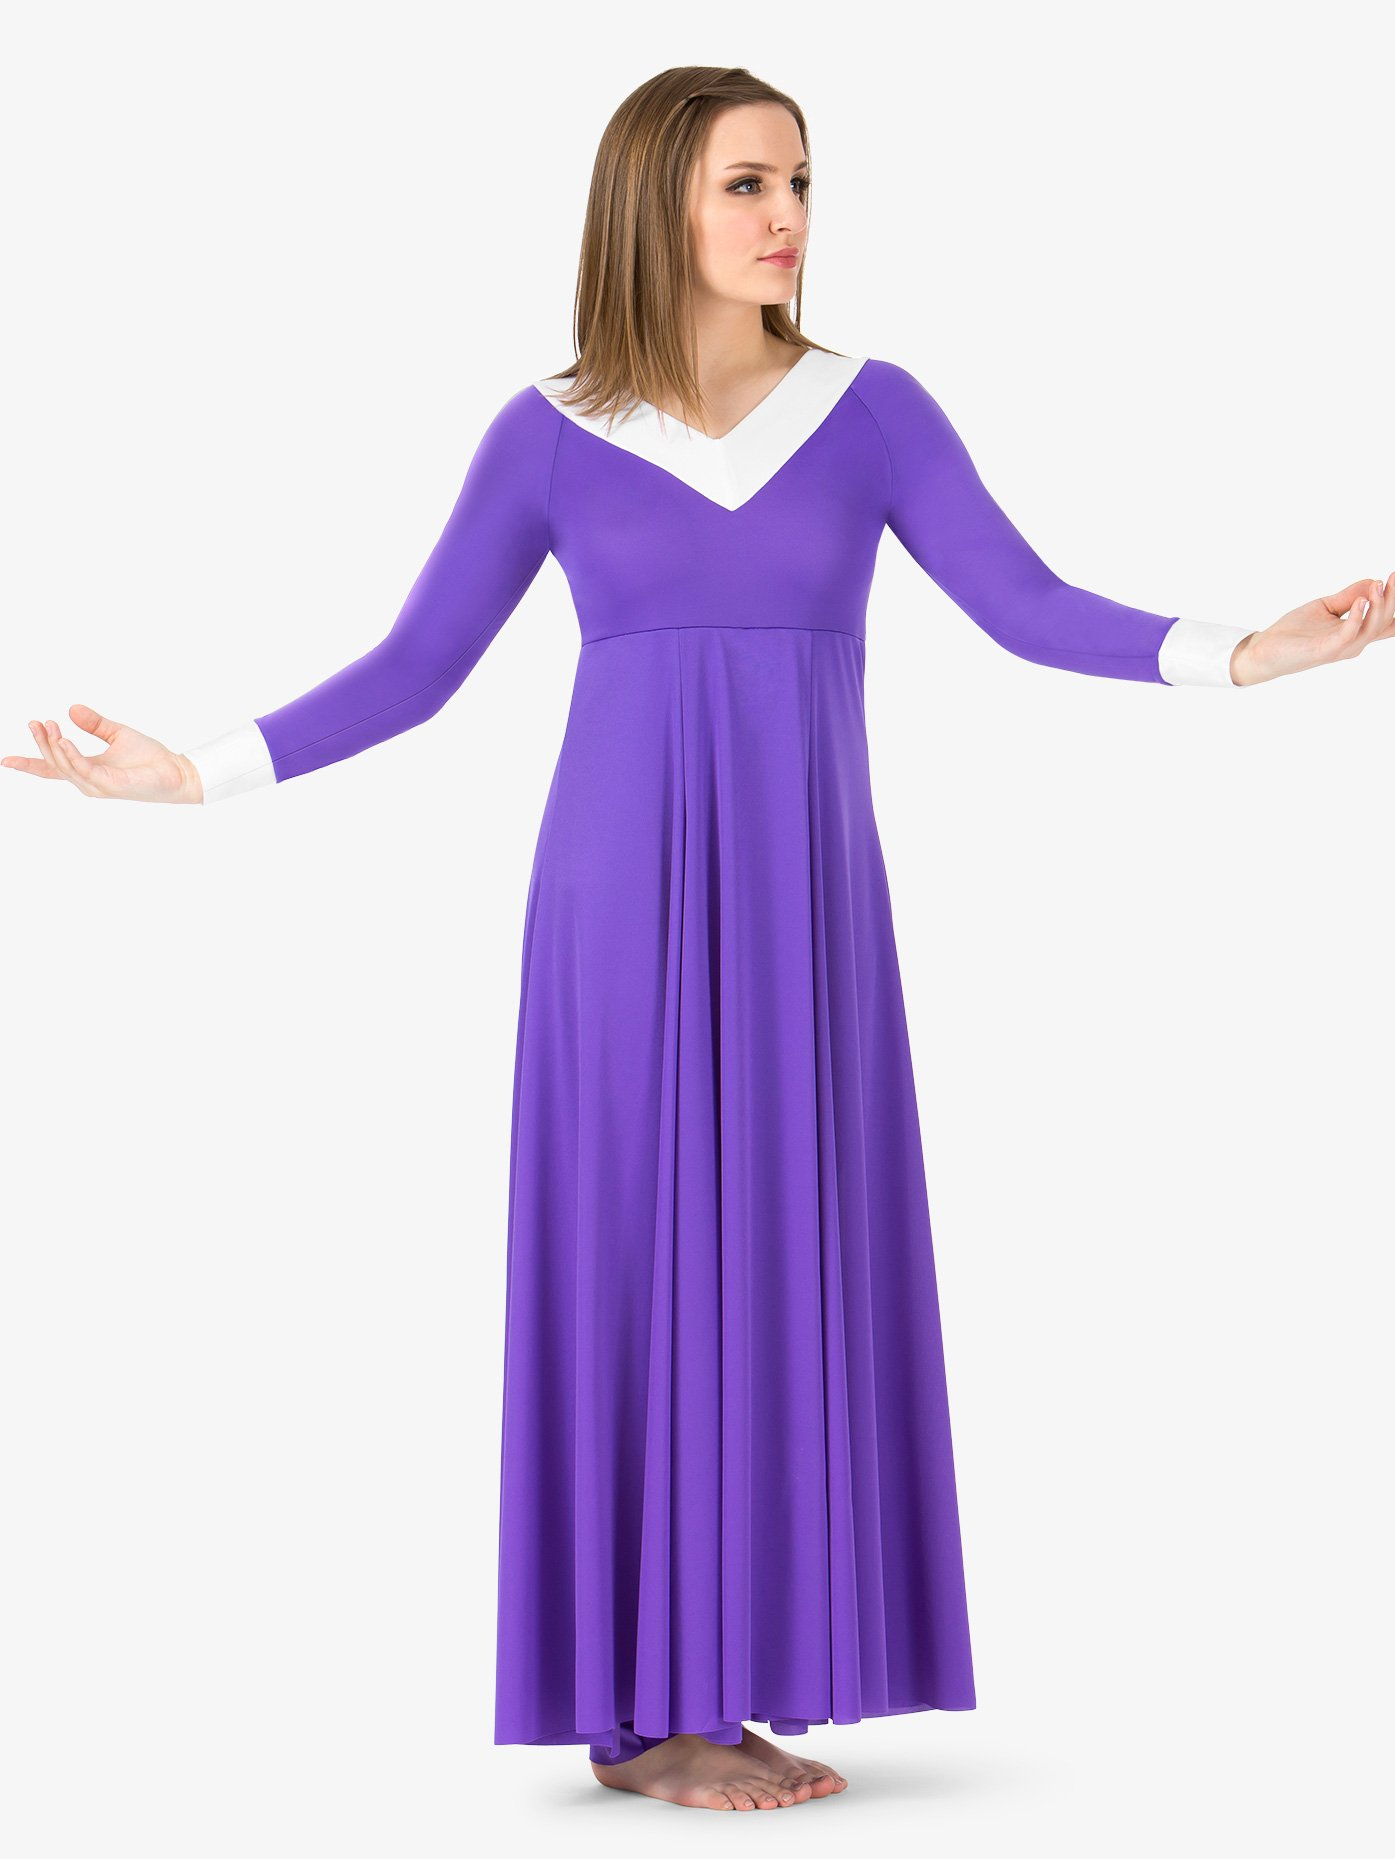 066fe917c66 Womens V Front Worship Jumpsuit - Style No BT5199. Loading zoom